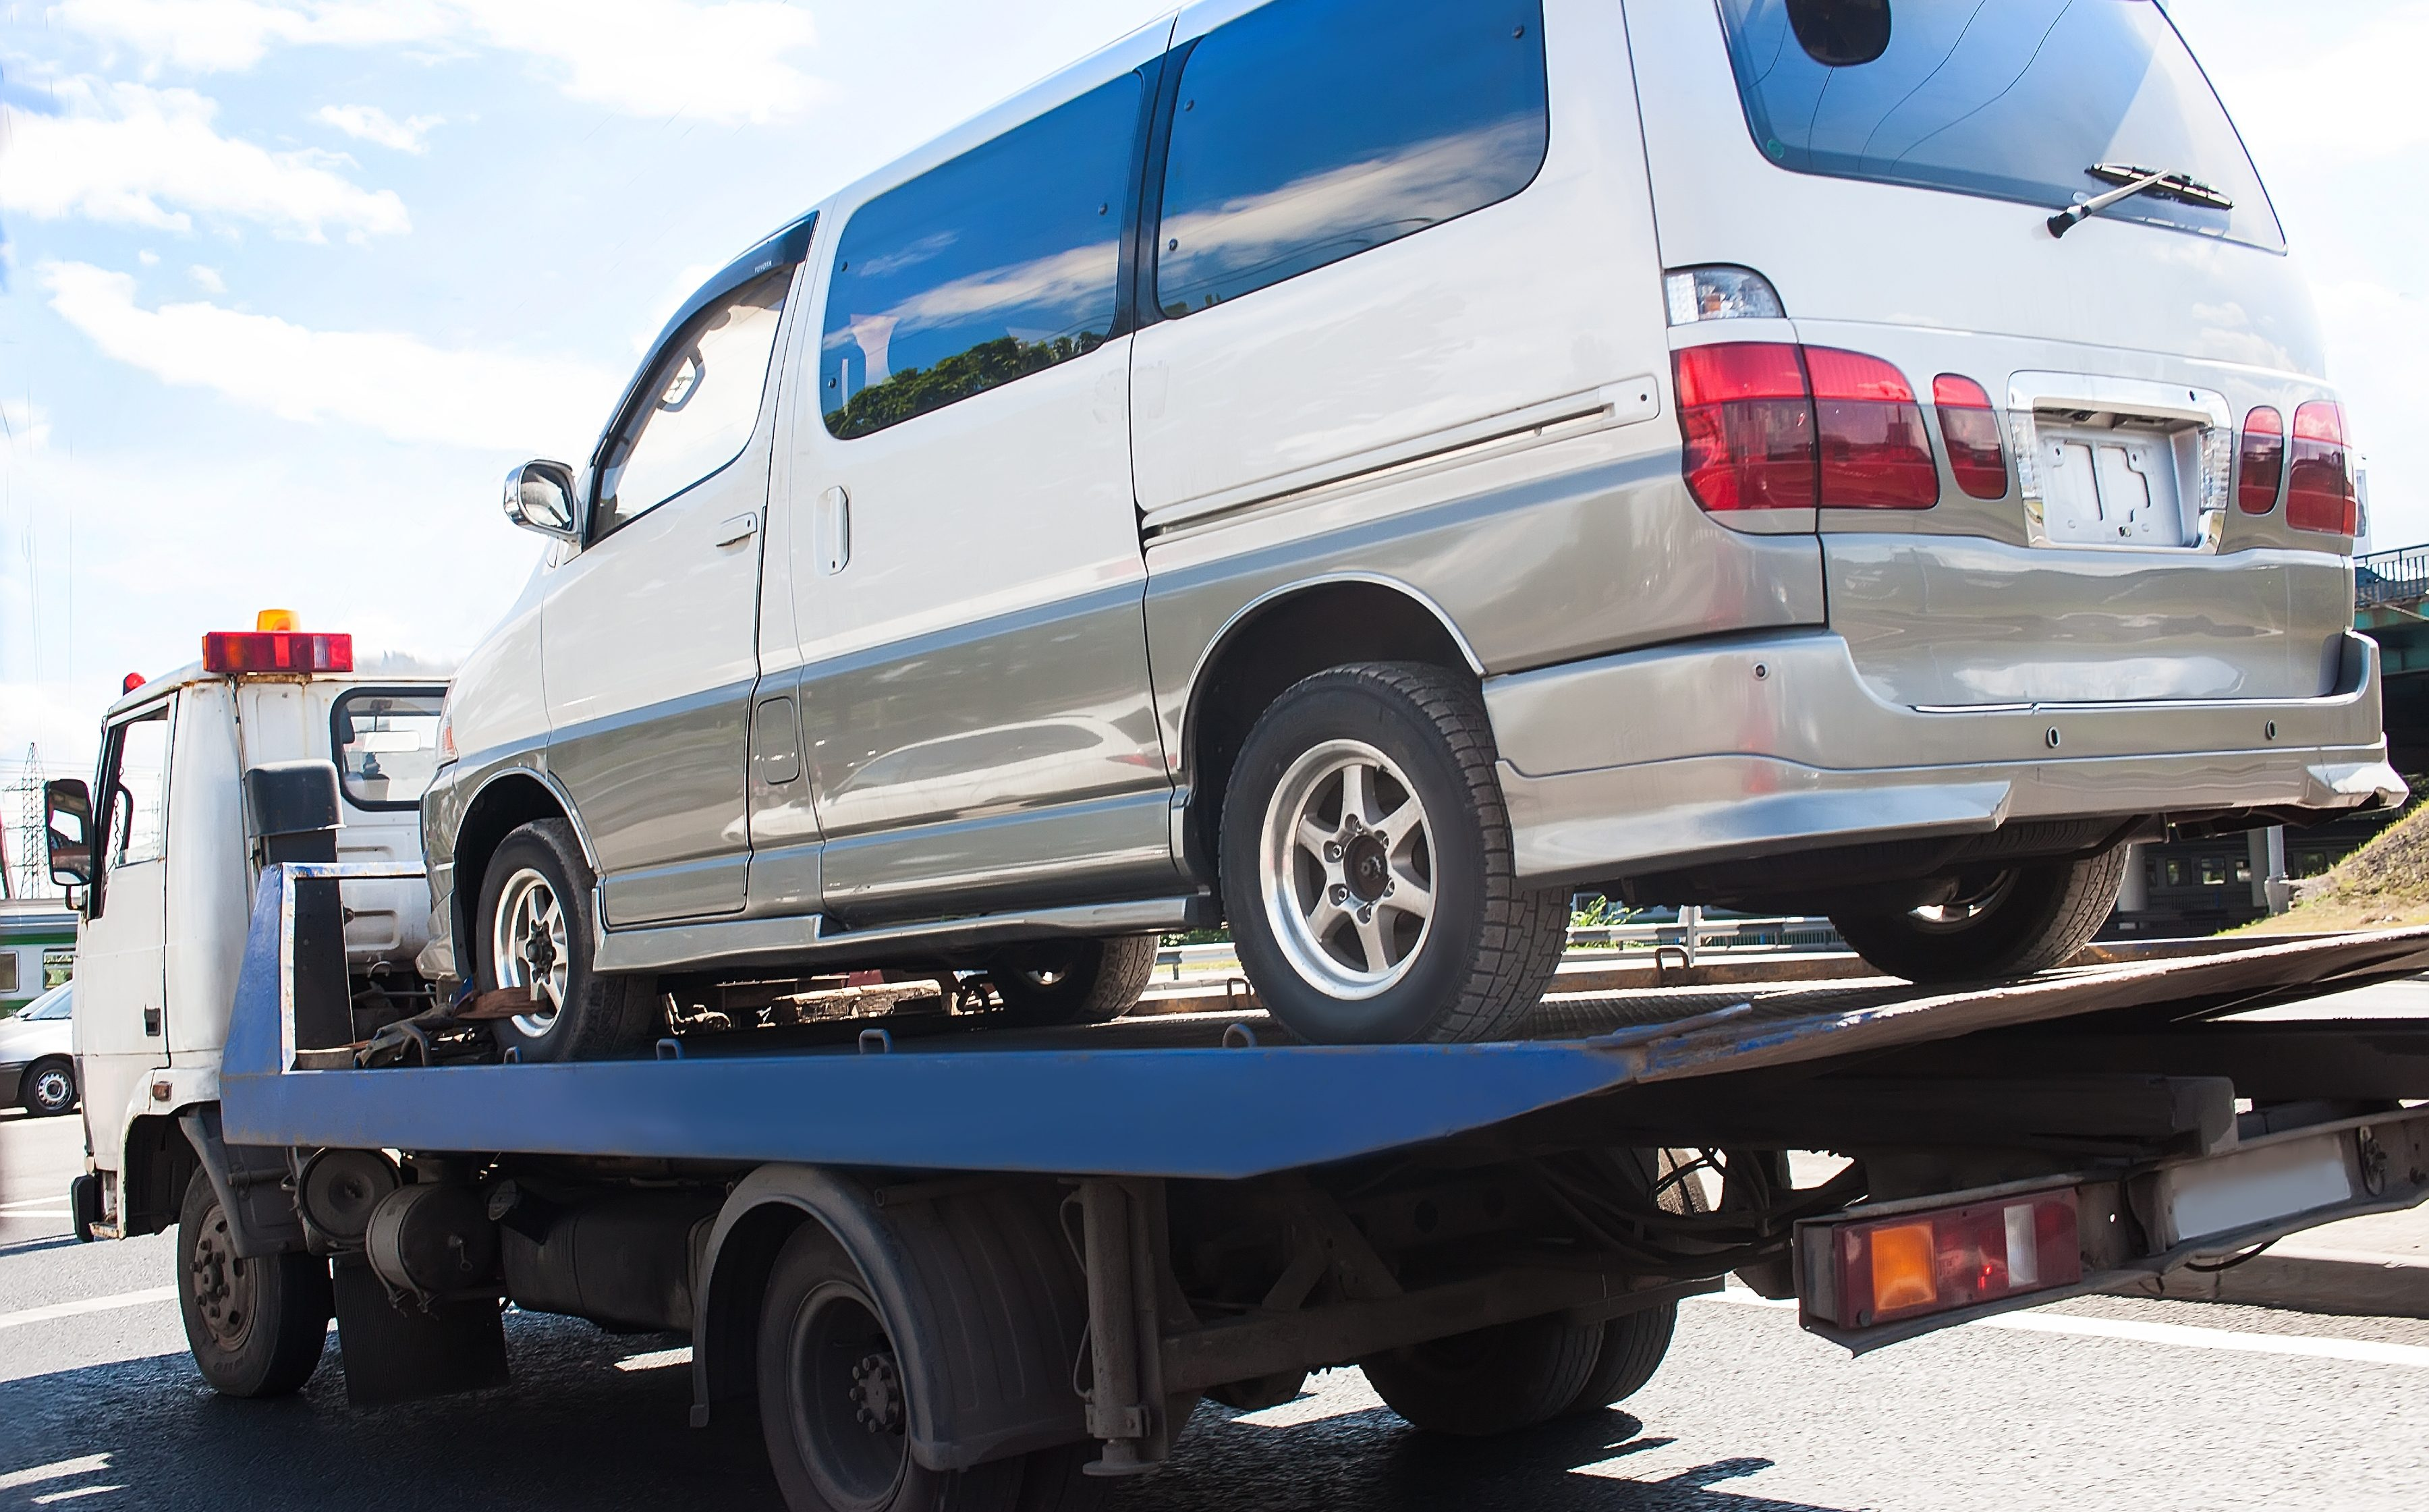 Selling Unwanted Vehicle in South Island